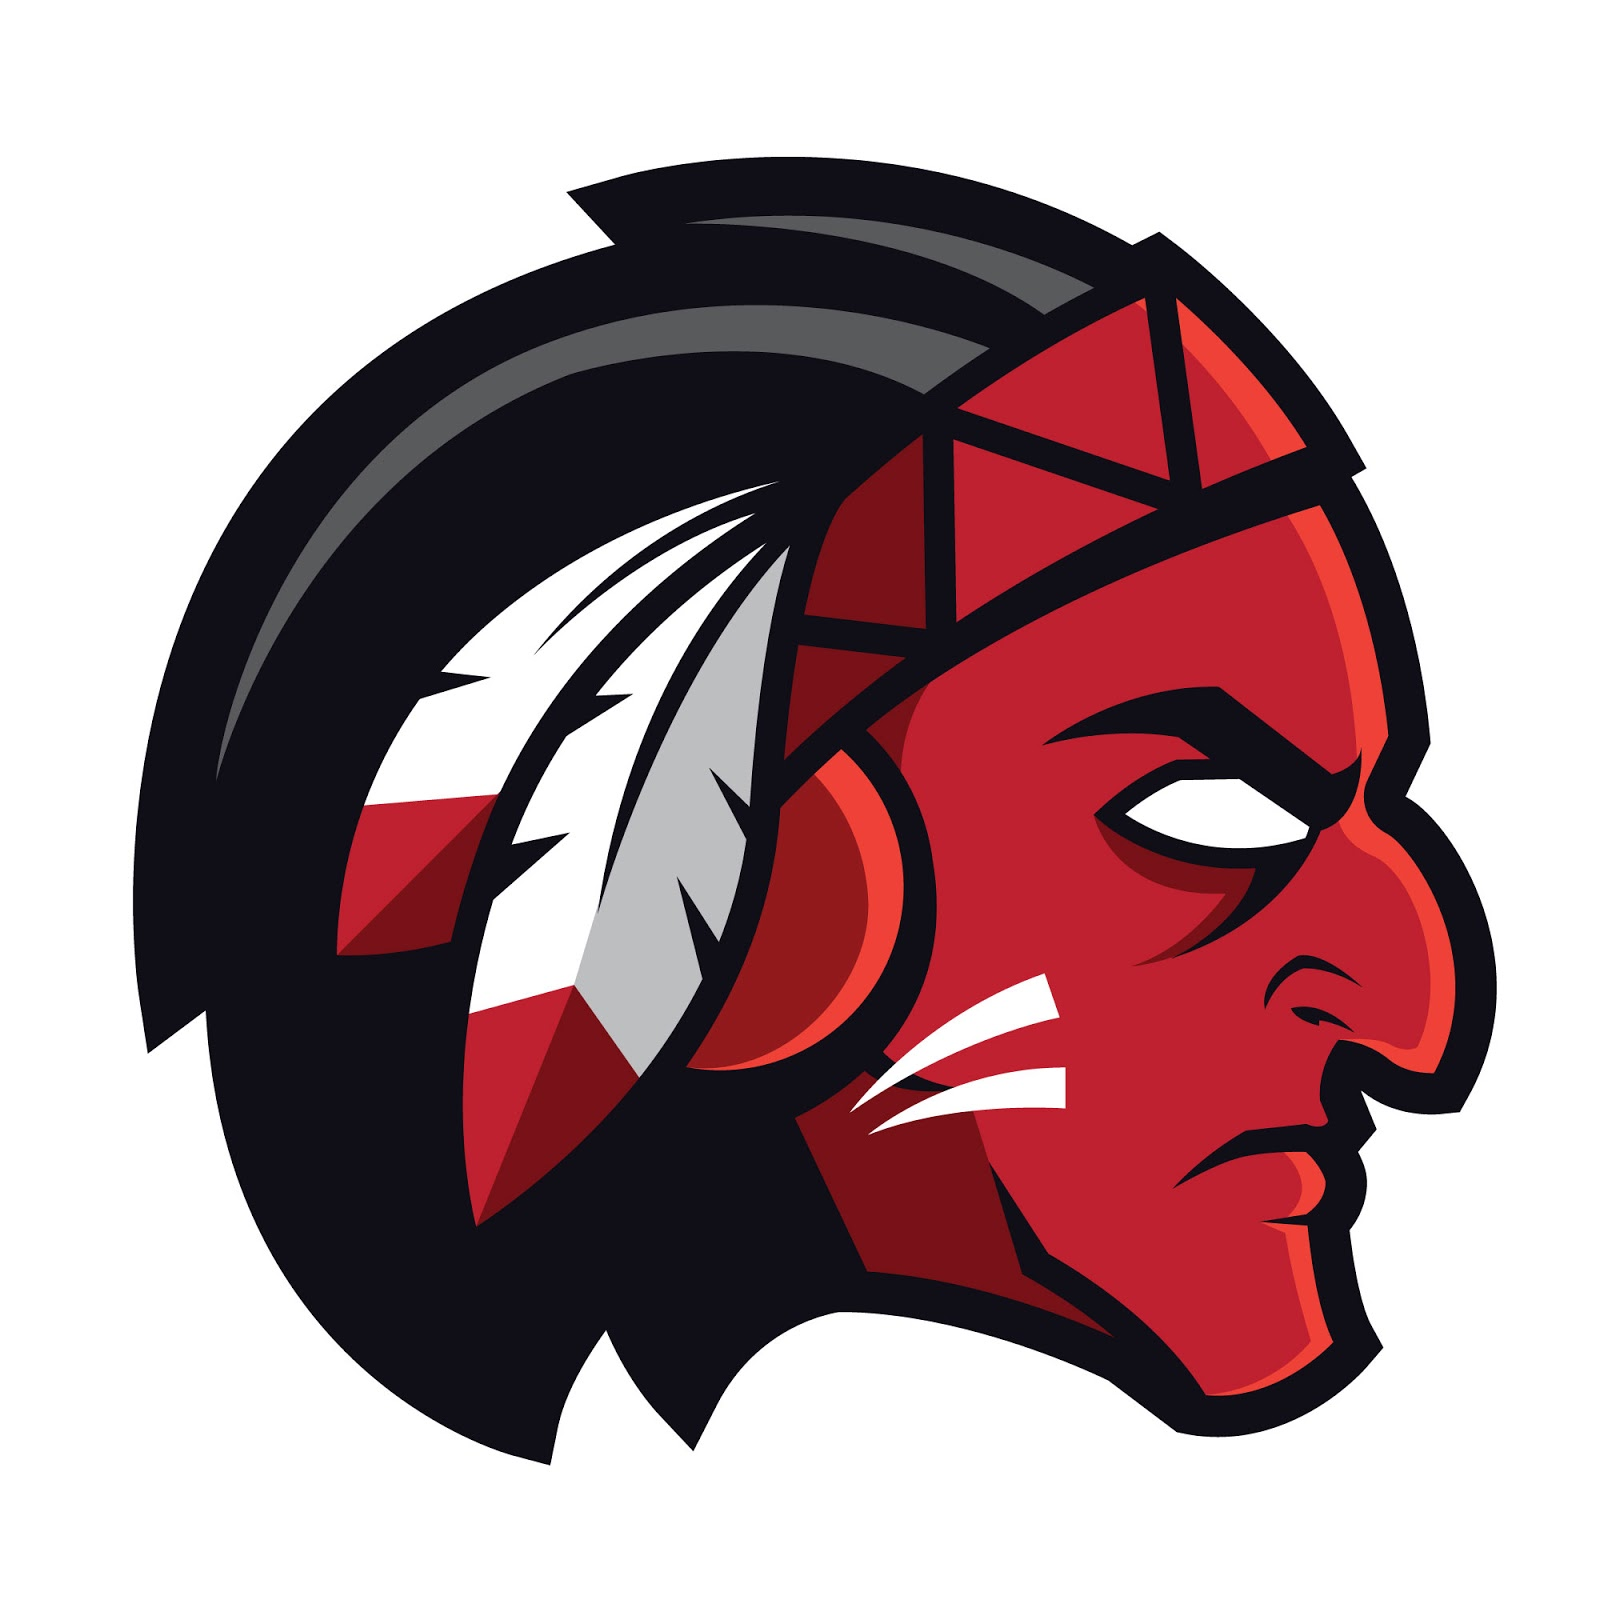 Chief Mascot Logo Free Download Vector CDR, AI, EPS and PNG Formats